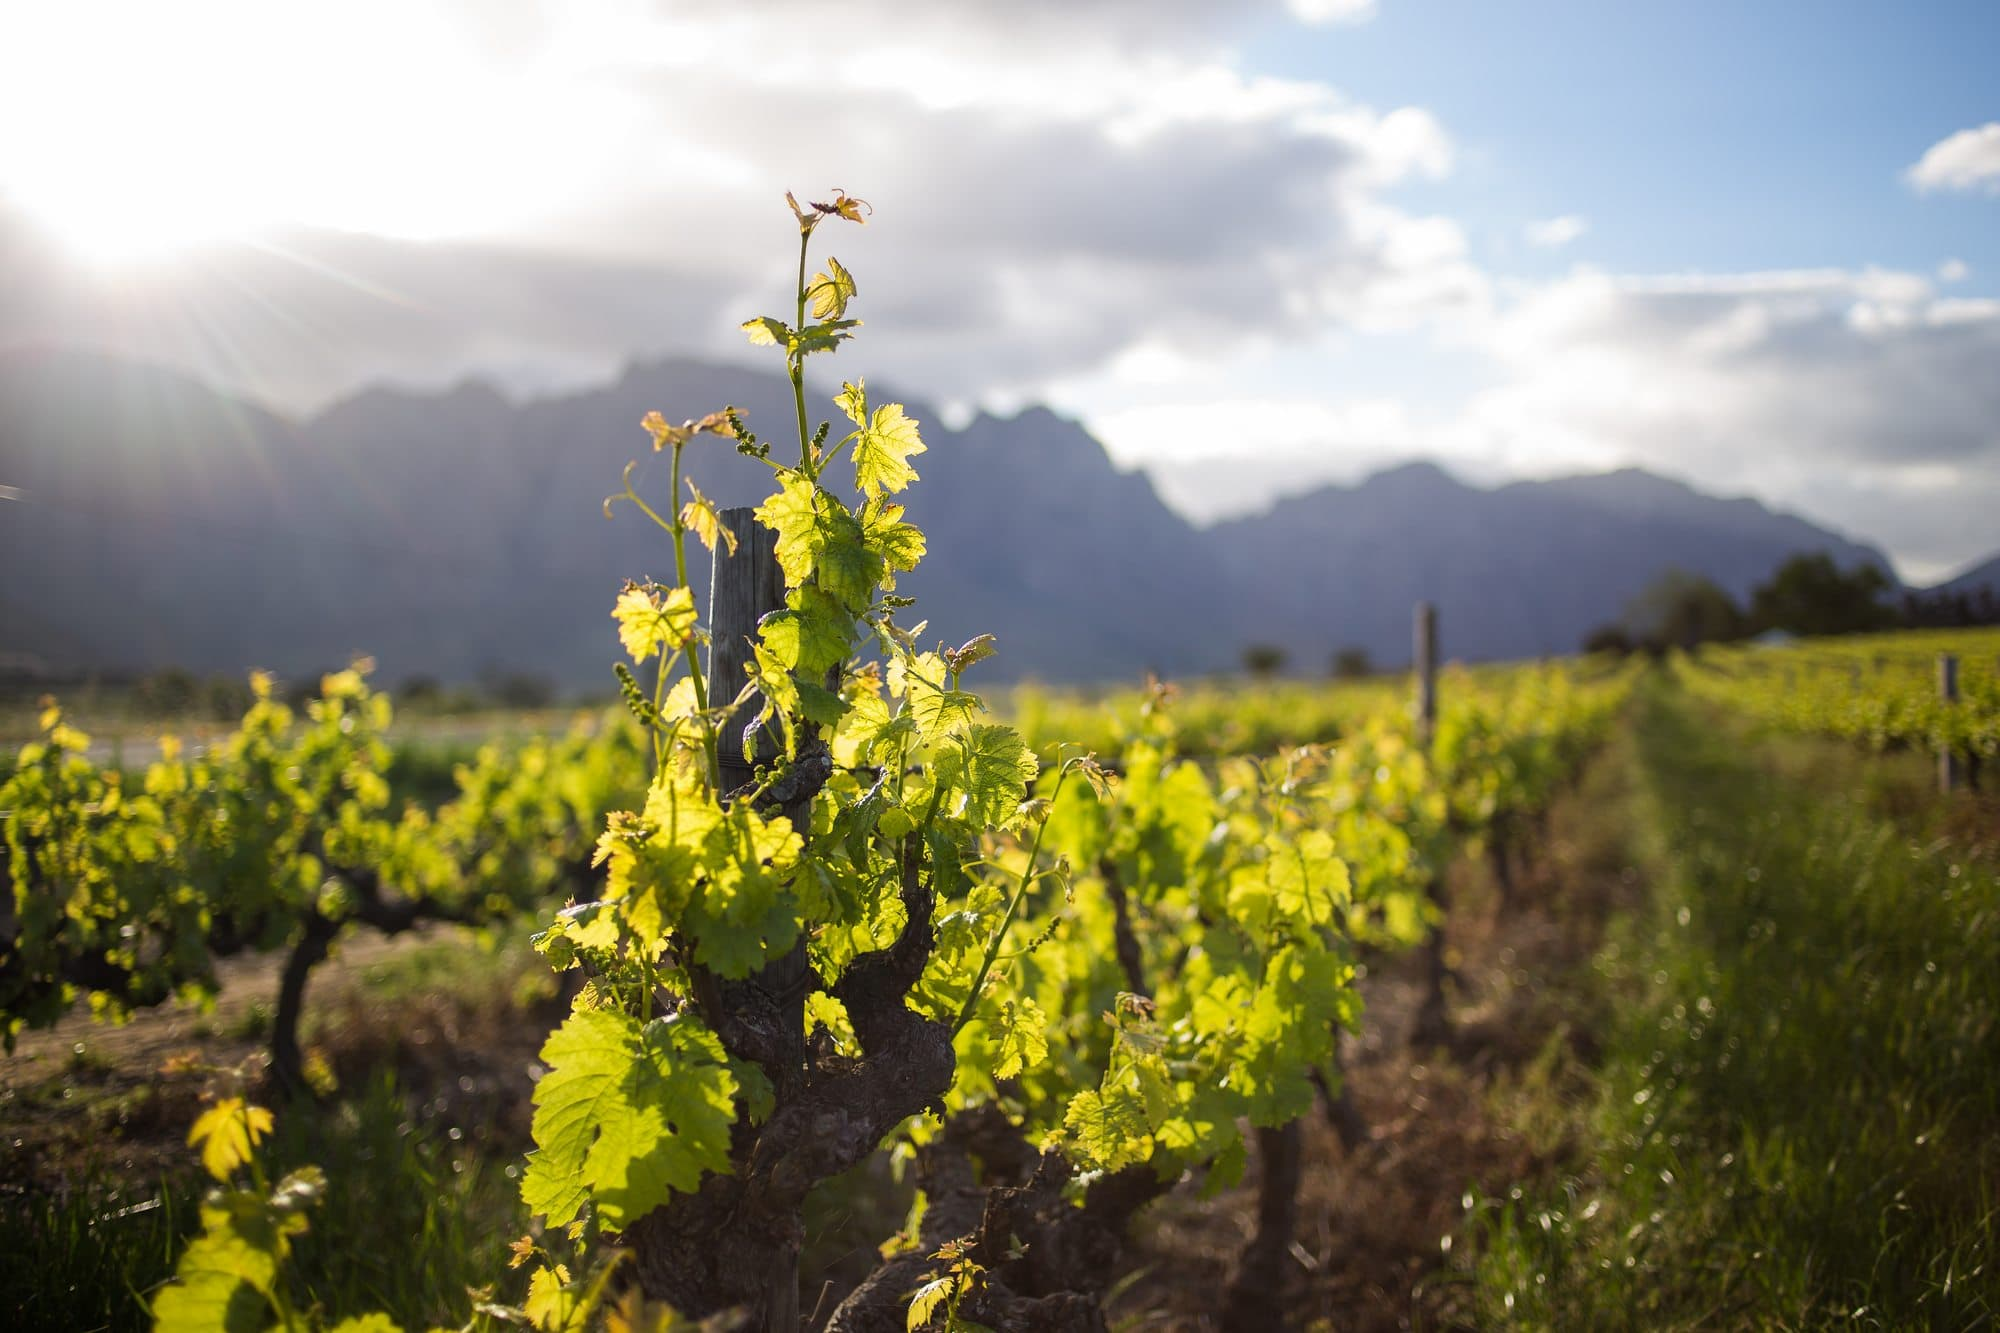 Wine tasting in South Africa? Bucket list worthy, for sure!